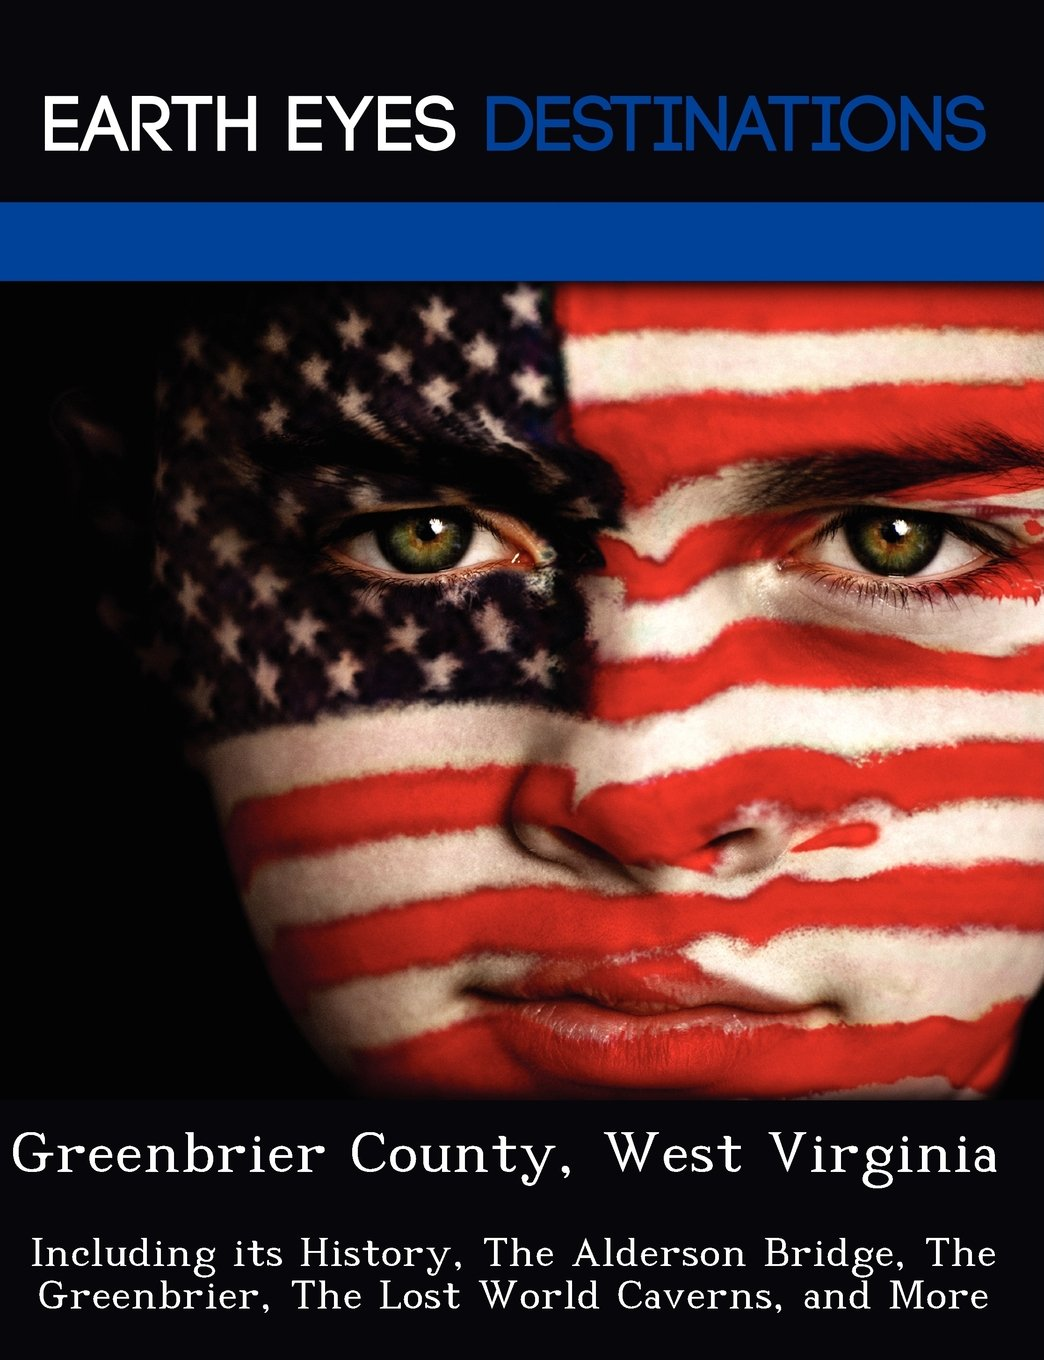 Download Greenbrier County, West Virginia: Including its History, The Alderson Bridge, The Greenbrier, The Lost World Caverns, and More PDF